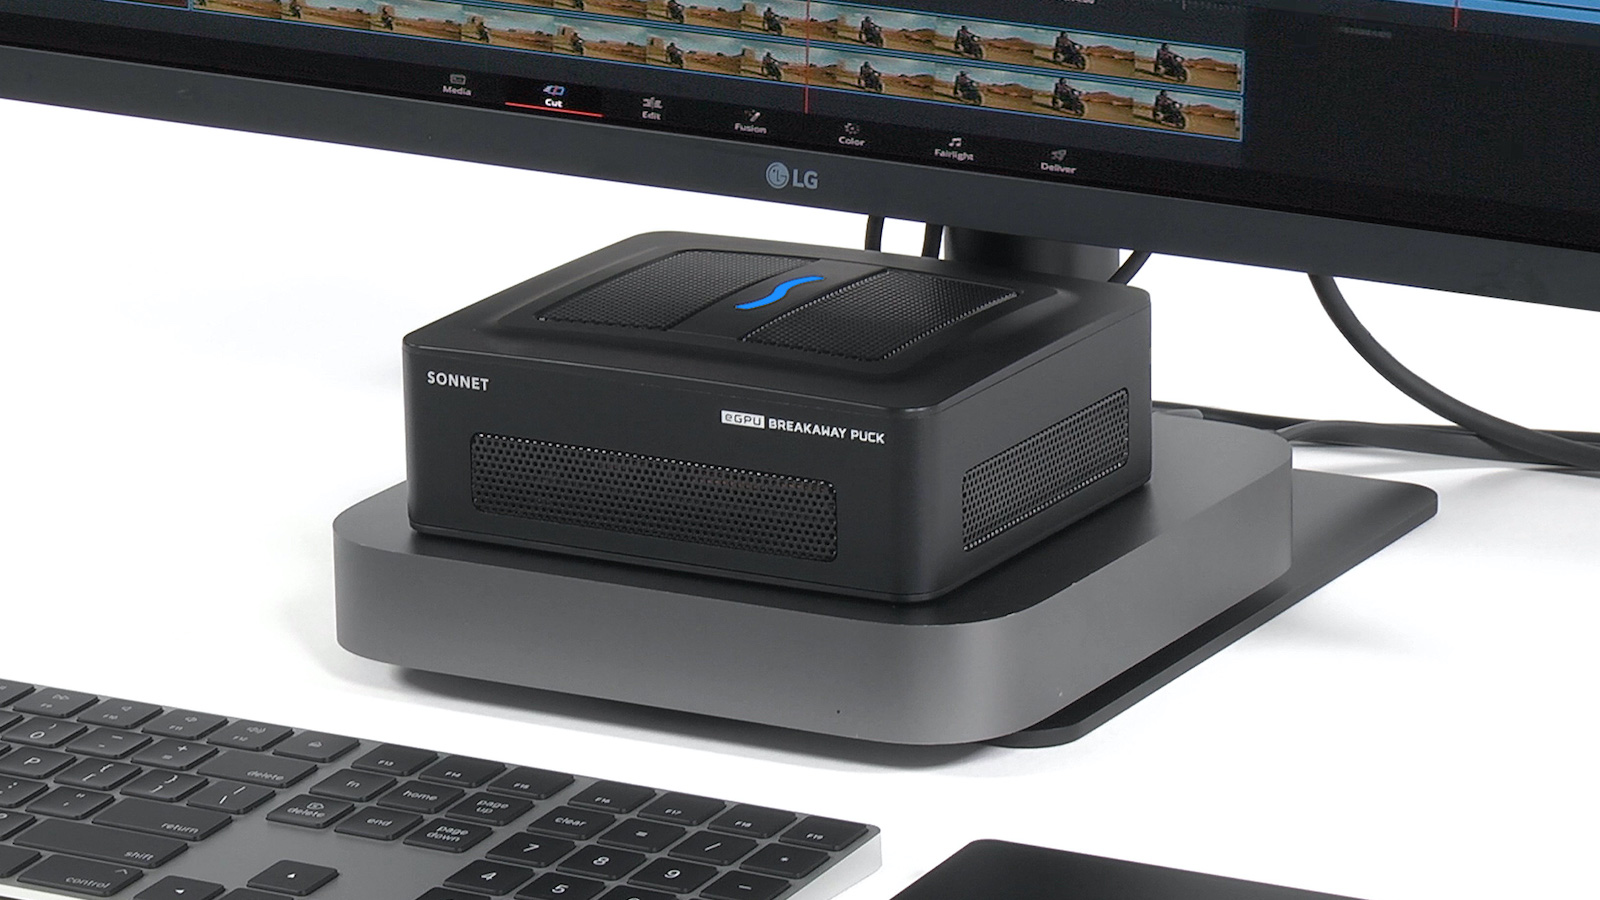 Sonnet eGPU Breakaway Pucks portable Mac docks have a compact, all-in-one design